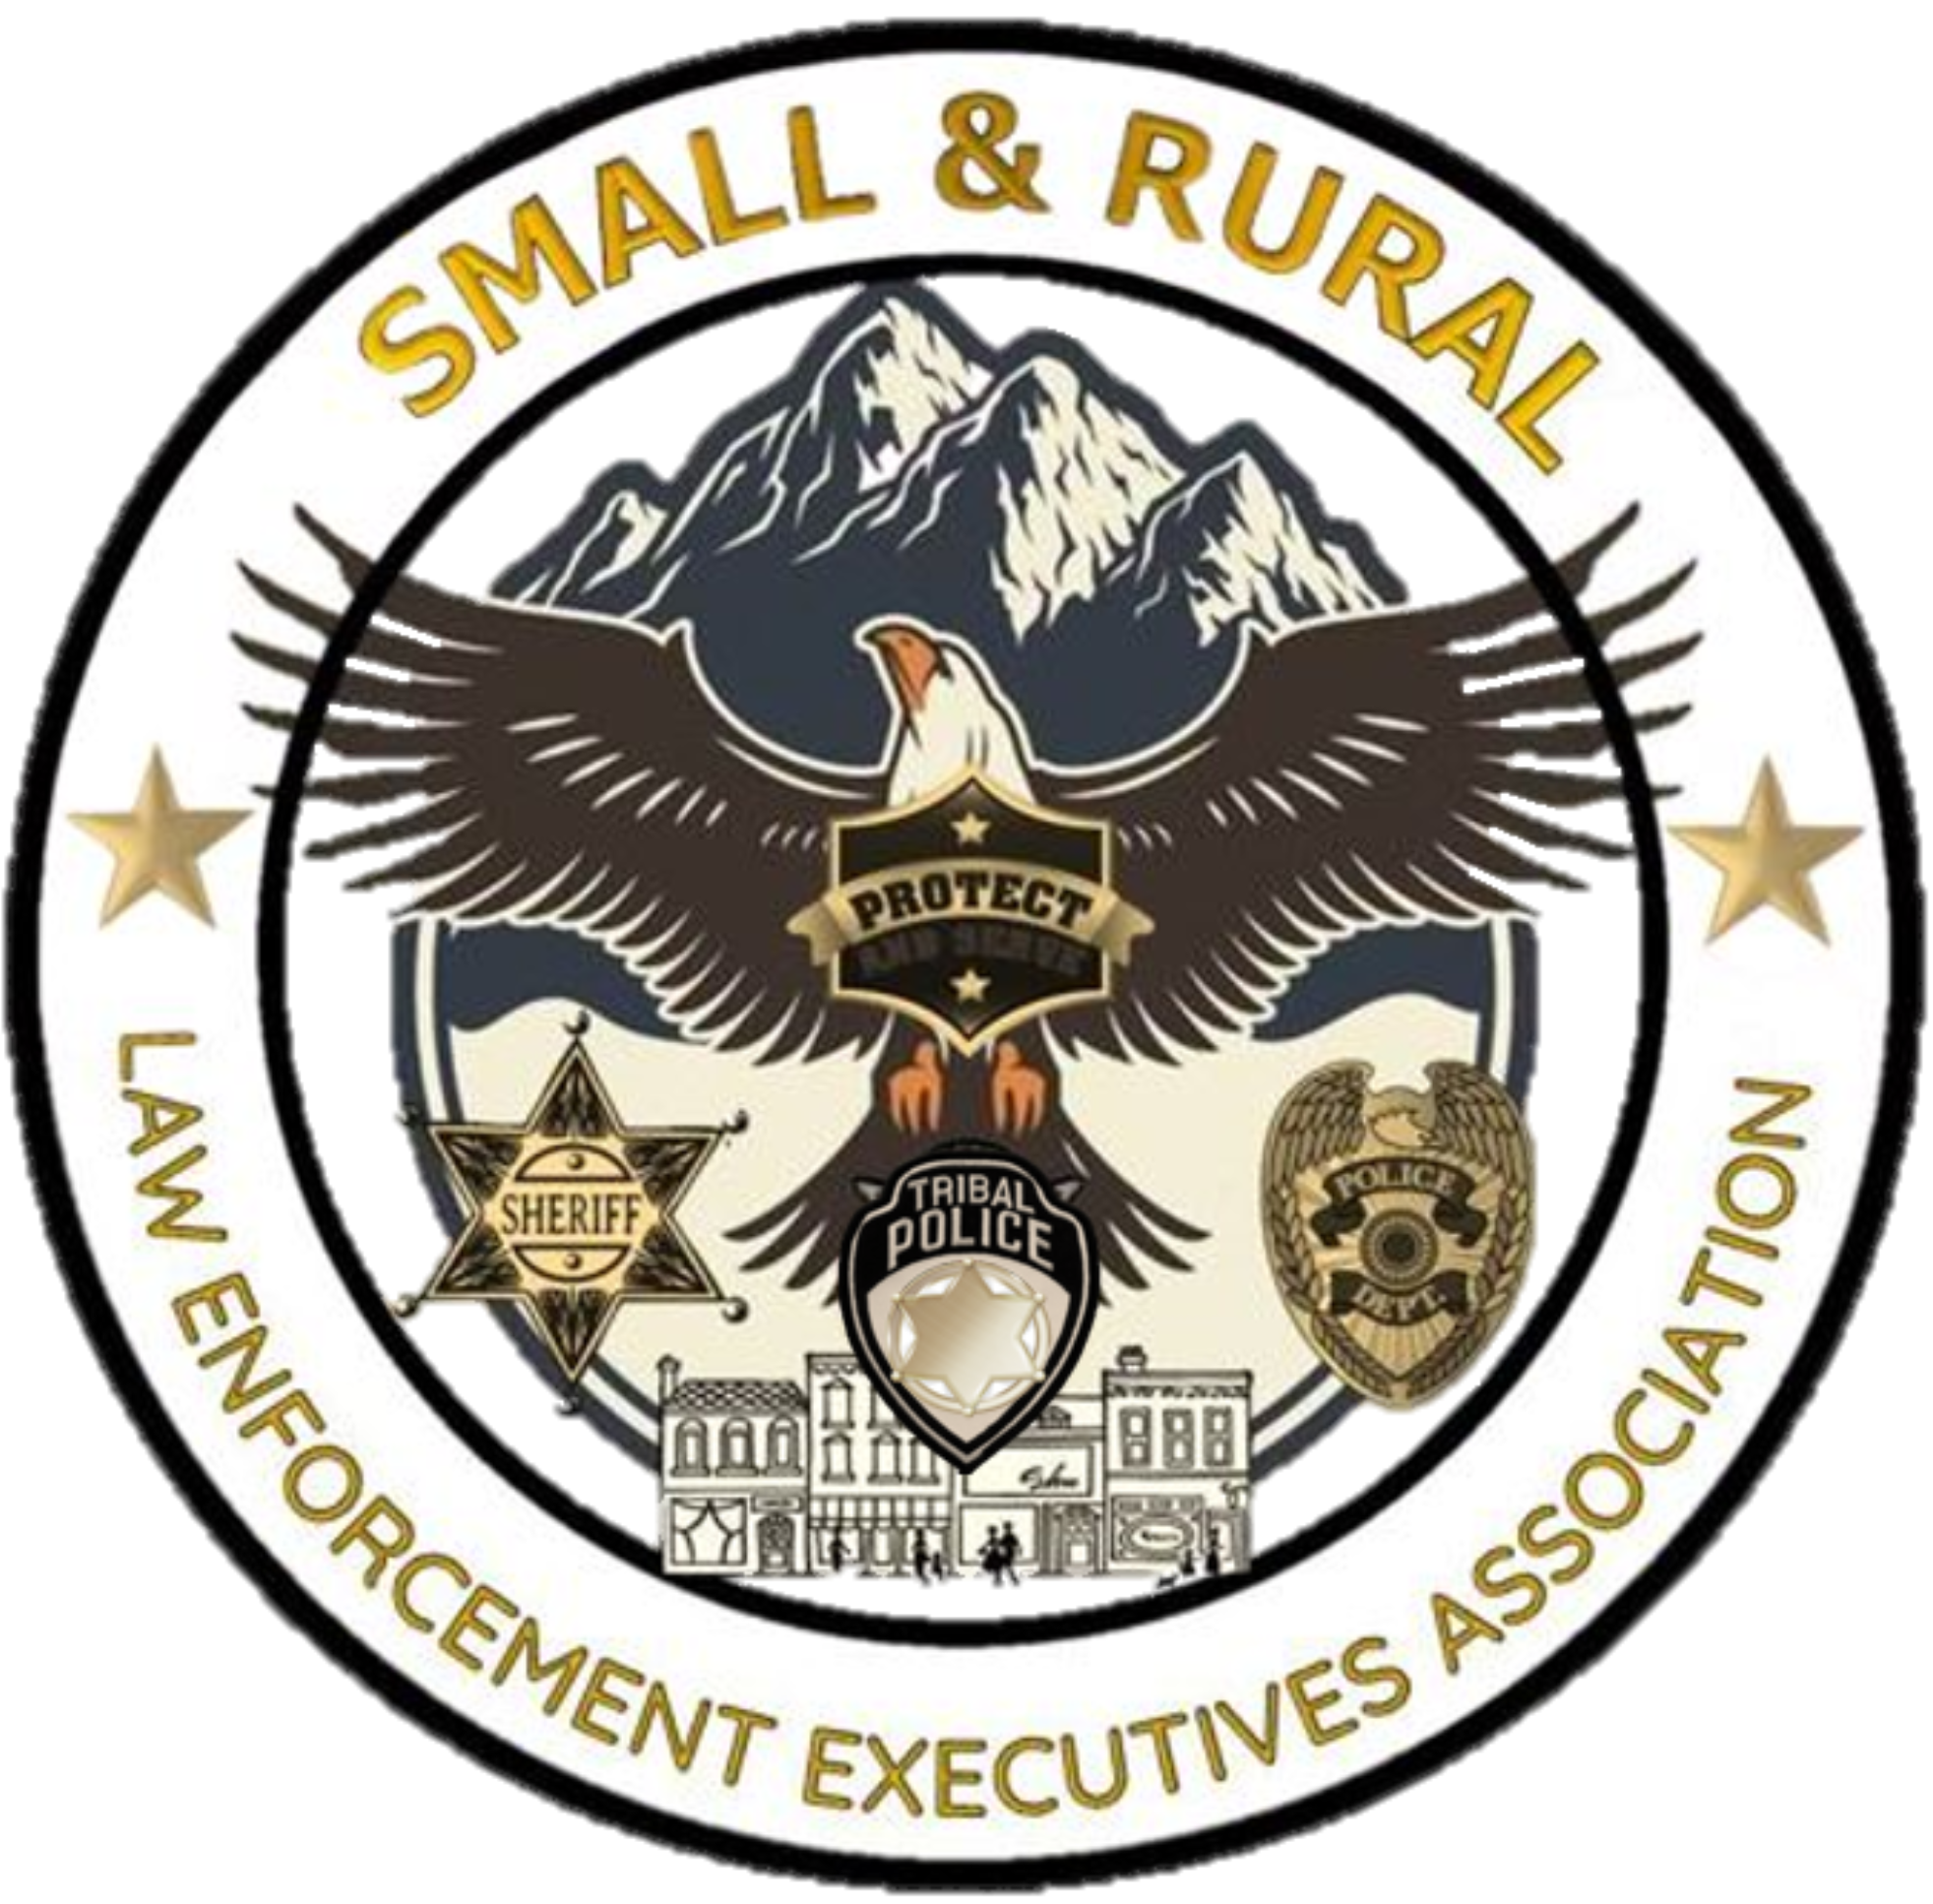 Small & Rural Law Enforcement Executives Association